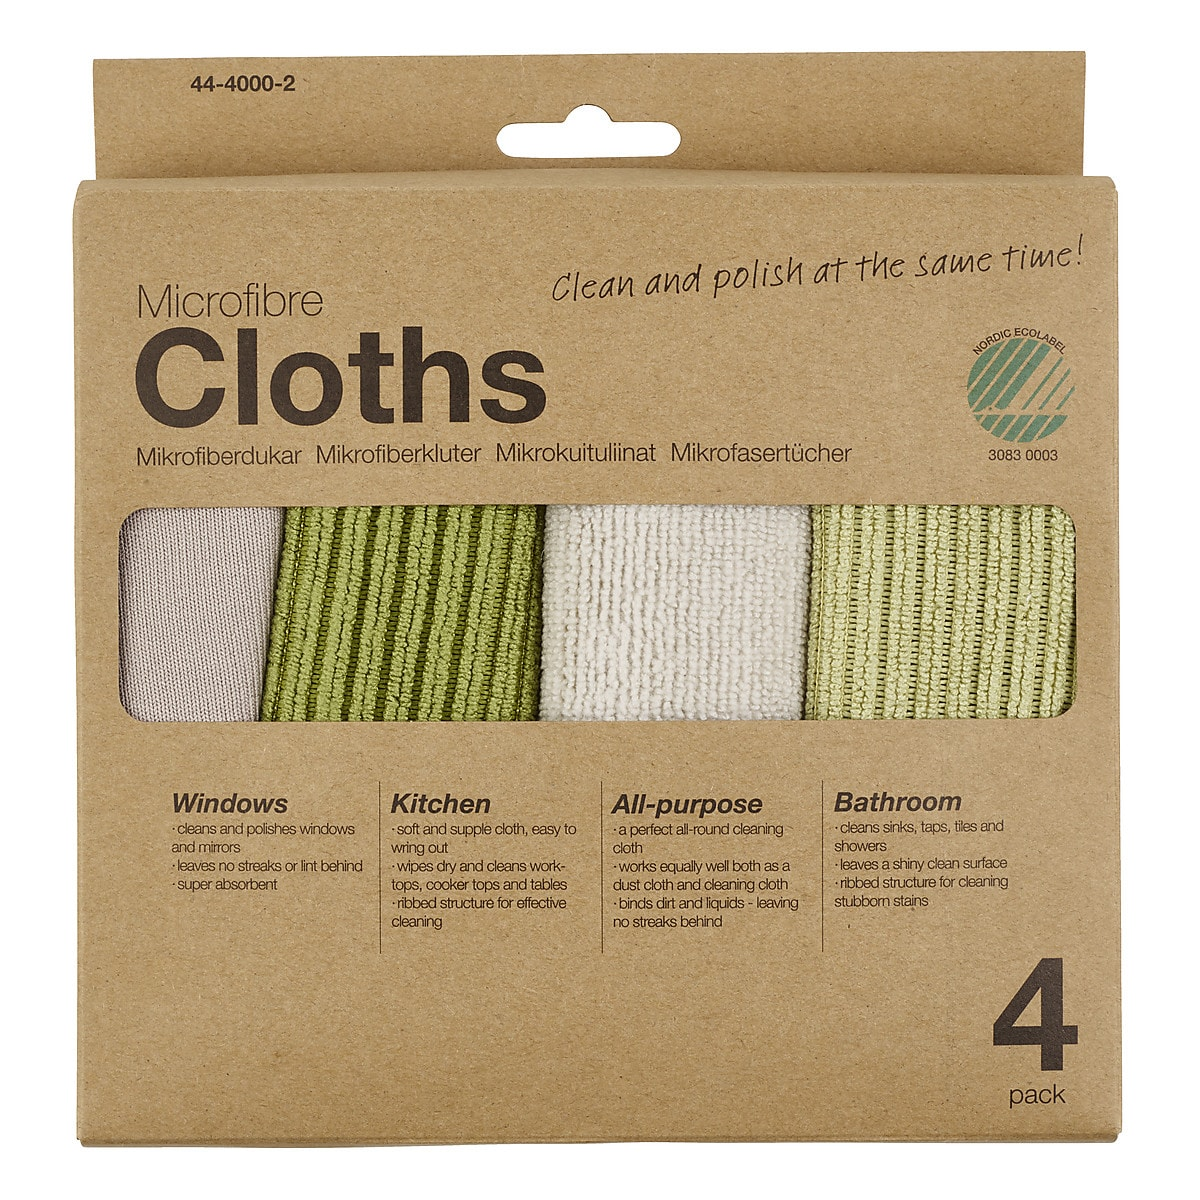 Microfibre Cloths 4-pack